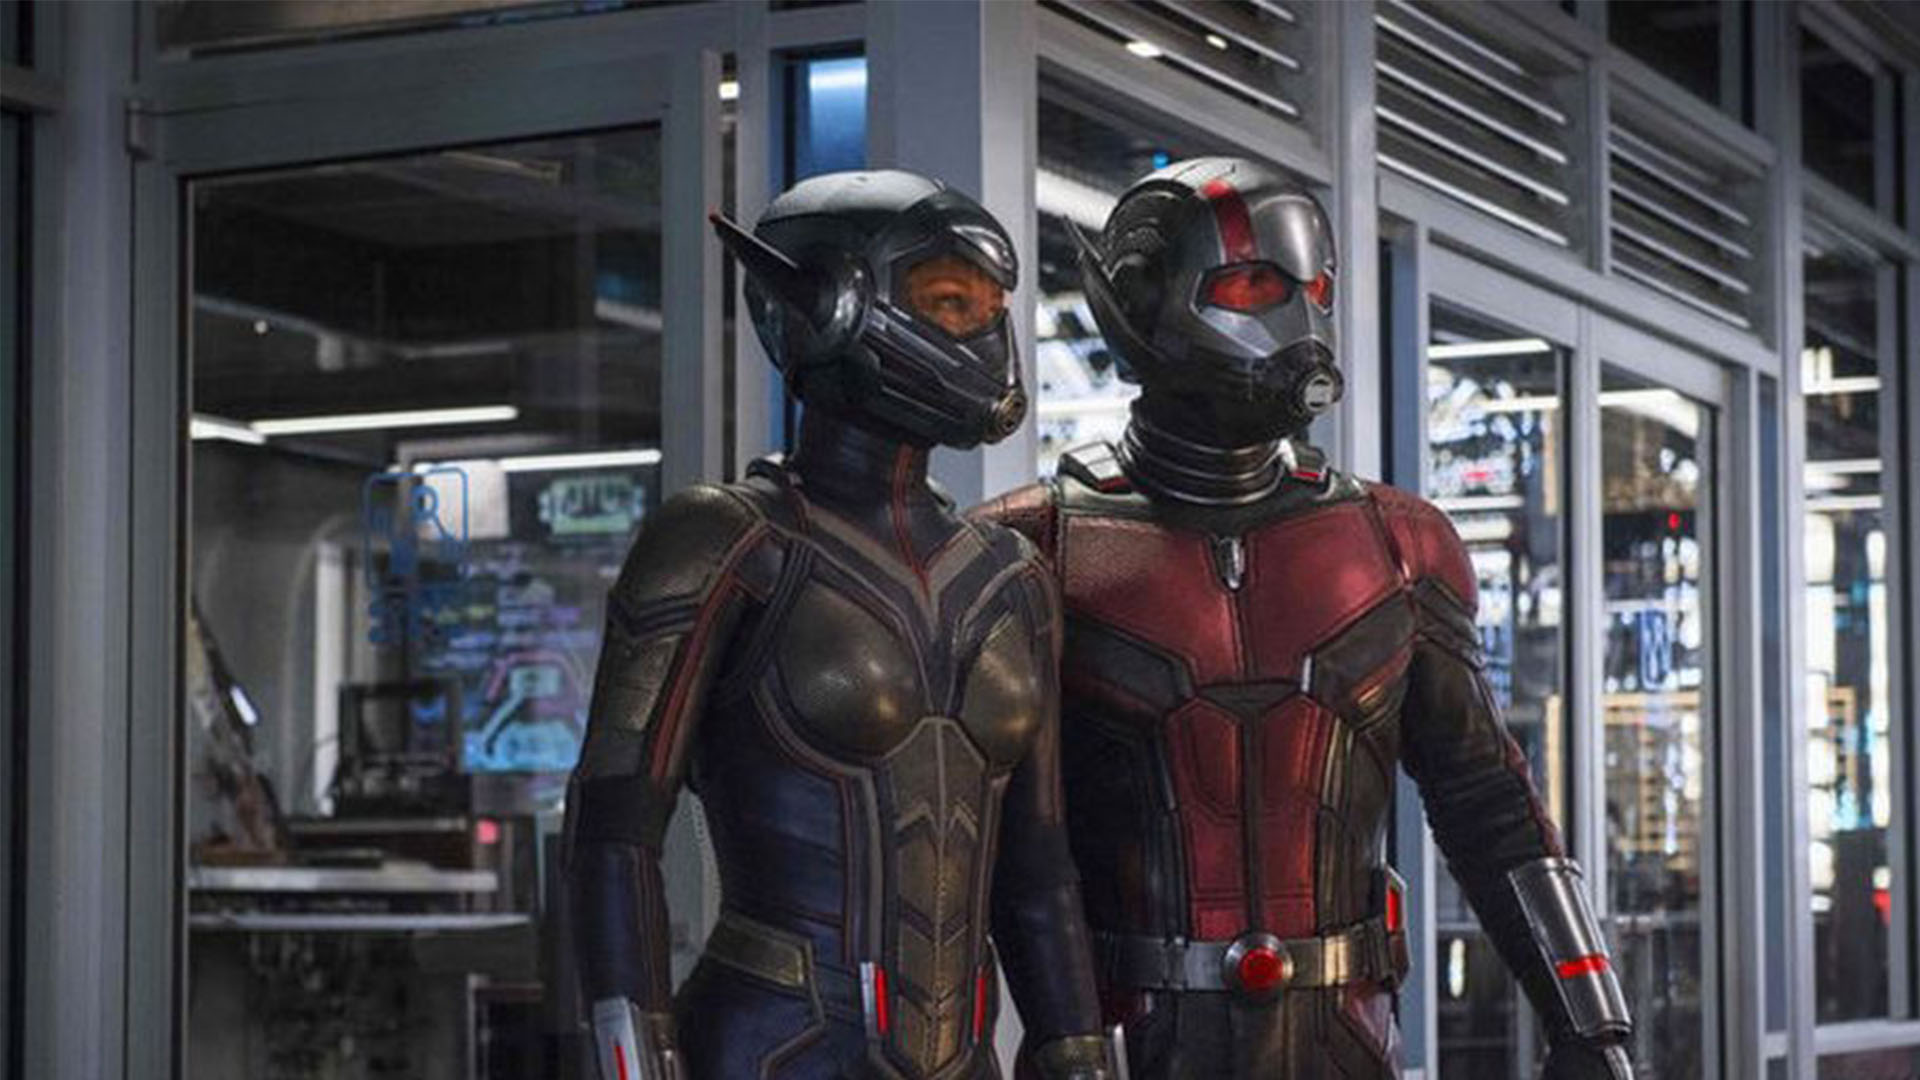 Some New Photos From ANT-MAN AND THE WASP Emerge